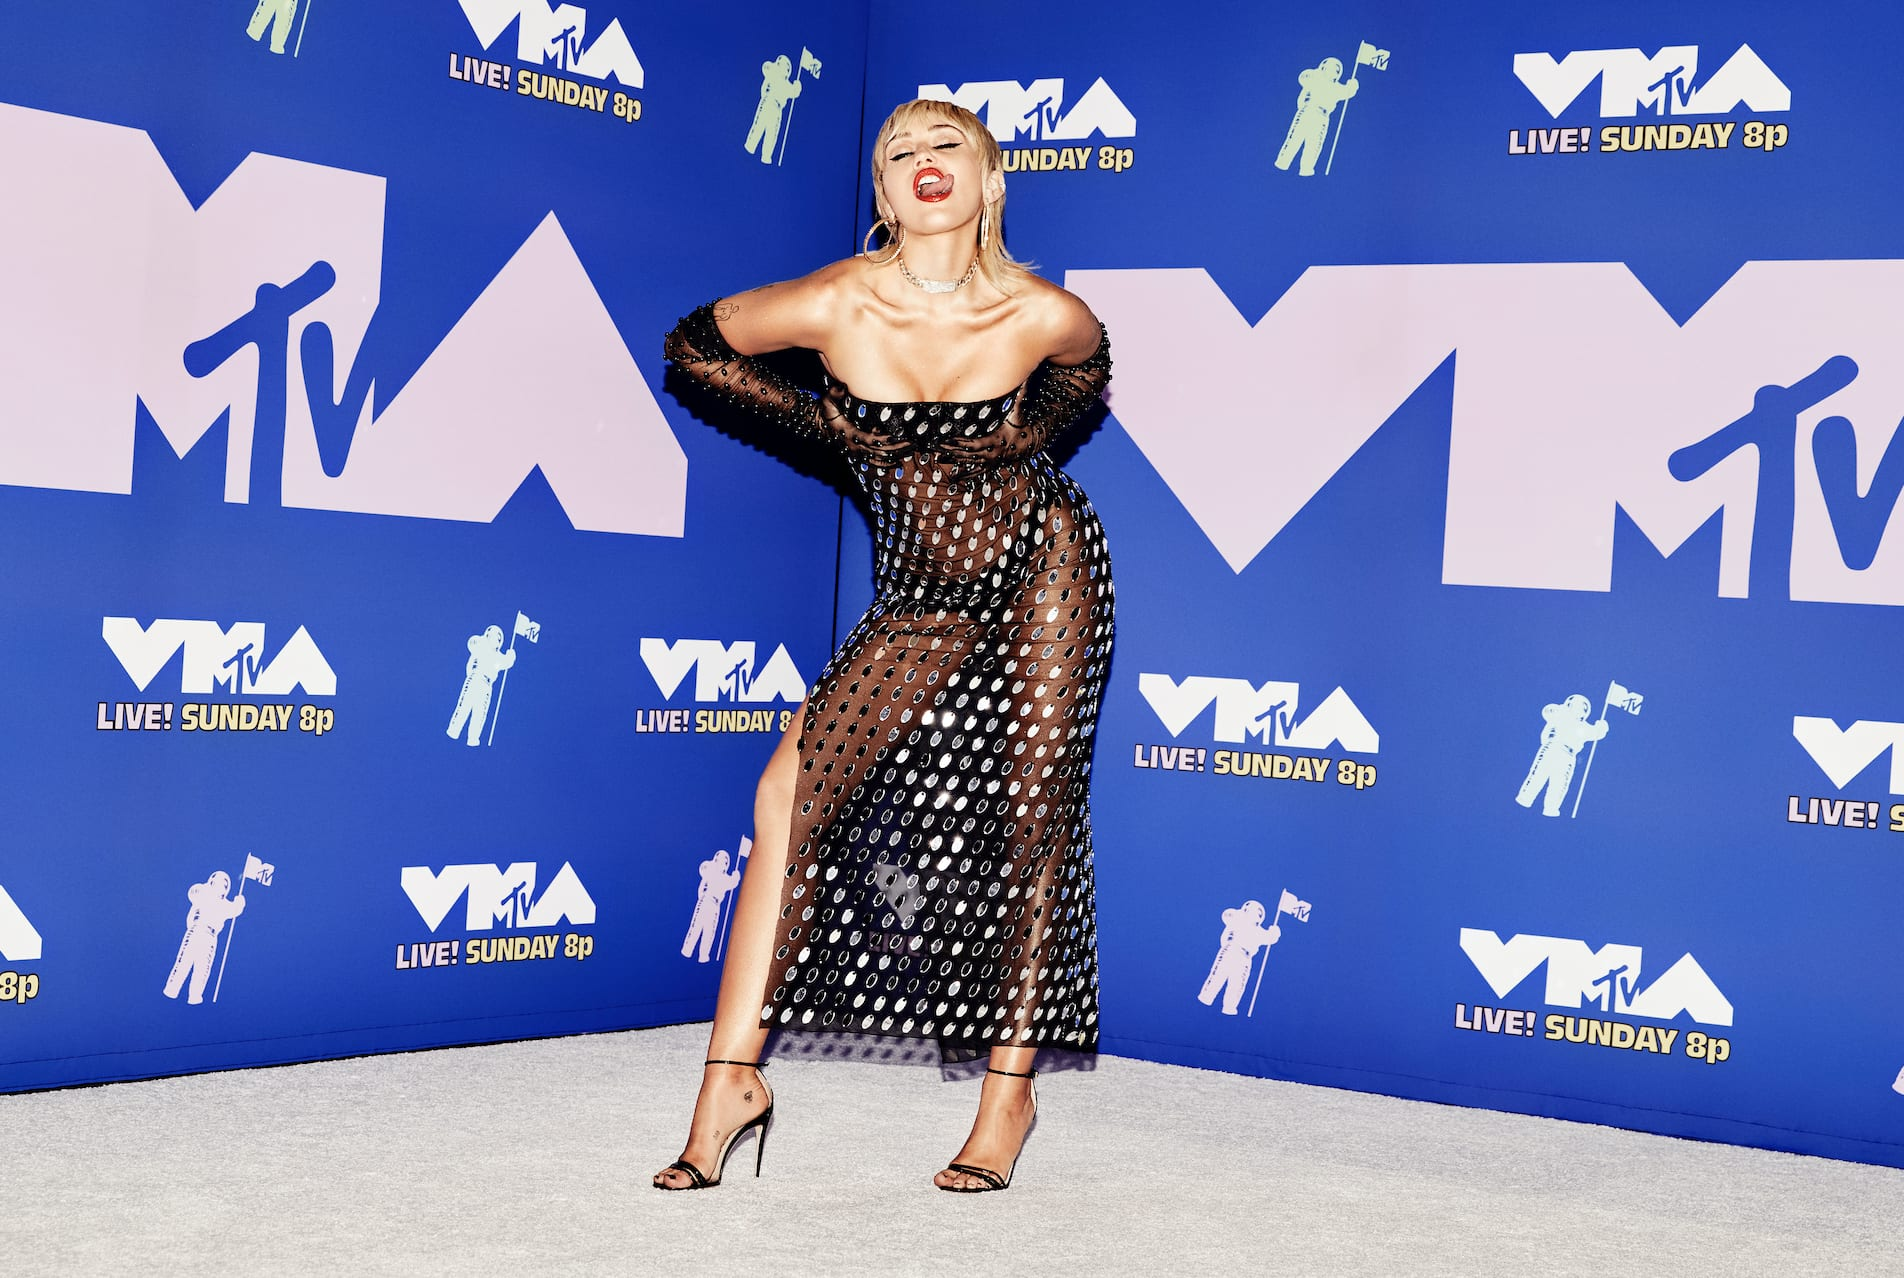 Miley Cyrus posando no VMA